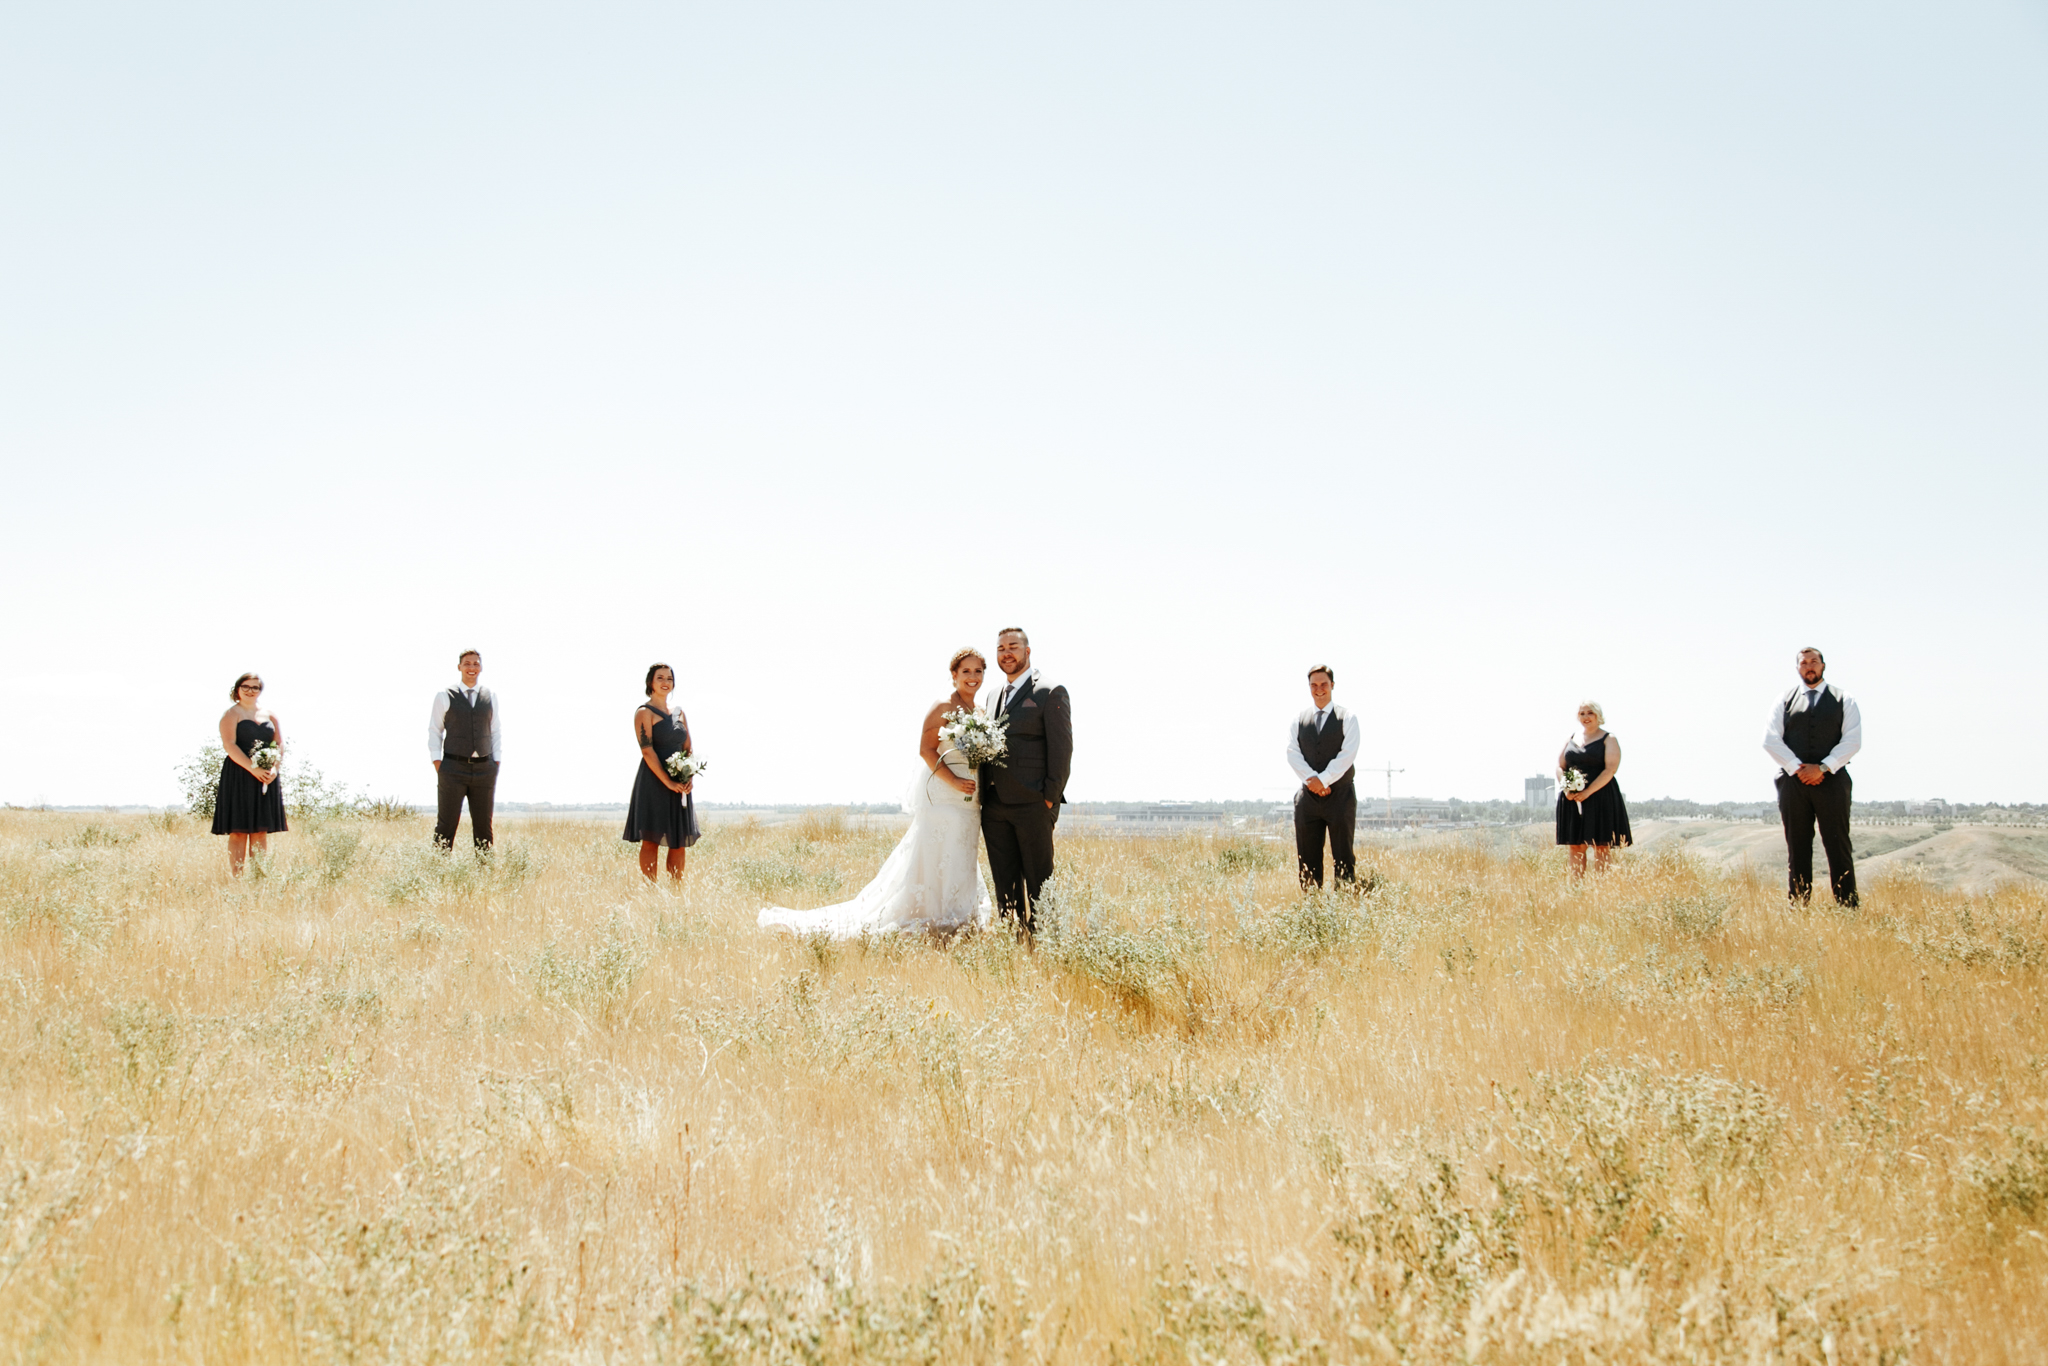 lethbridge-wedding-photographer-love-and-be-loved-photography-trent-danielle-galt-reception-picture-image-photo-88.jpg